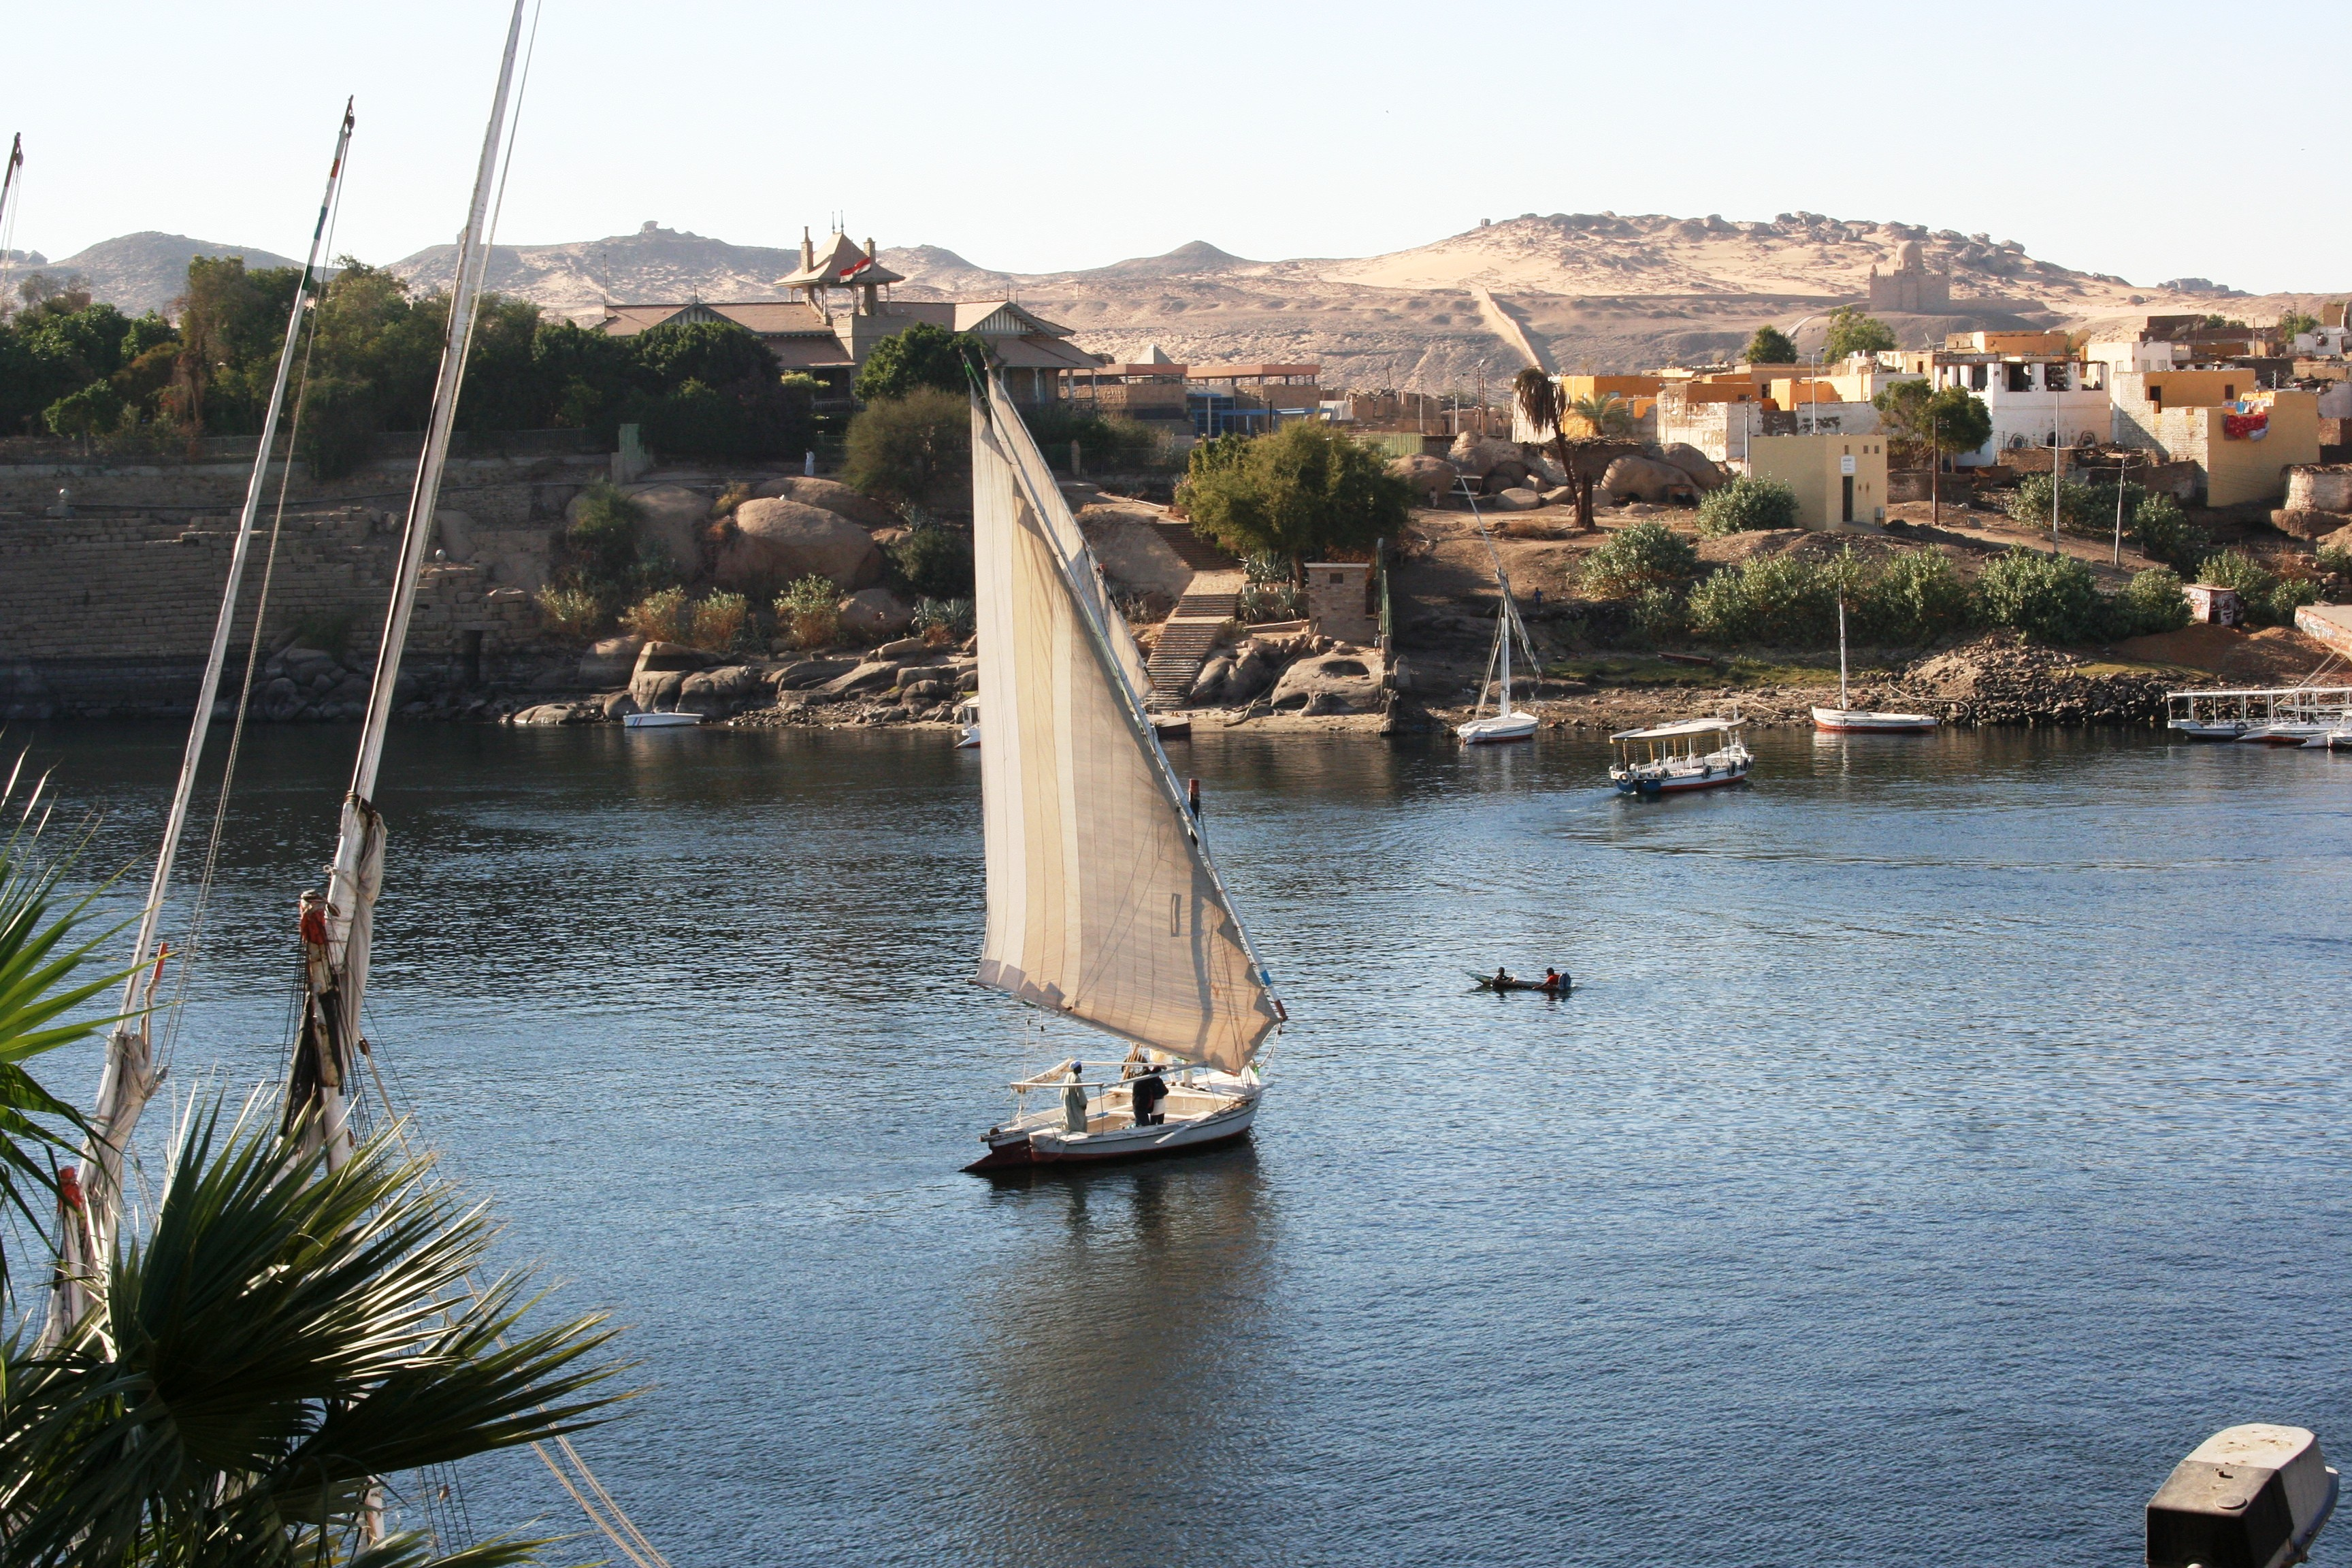 Boat on Nile